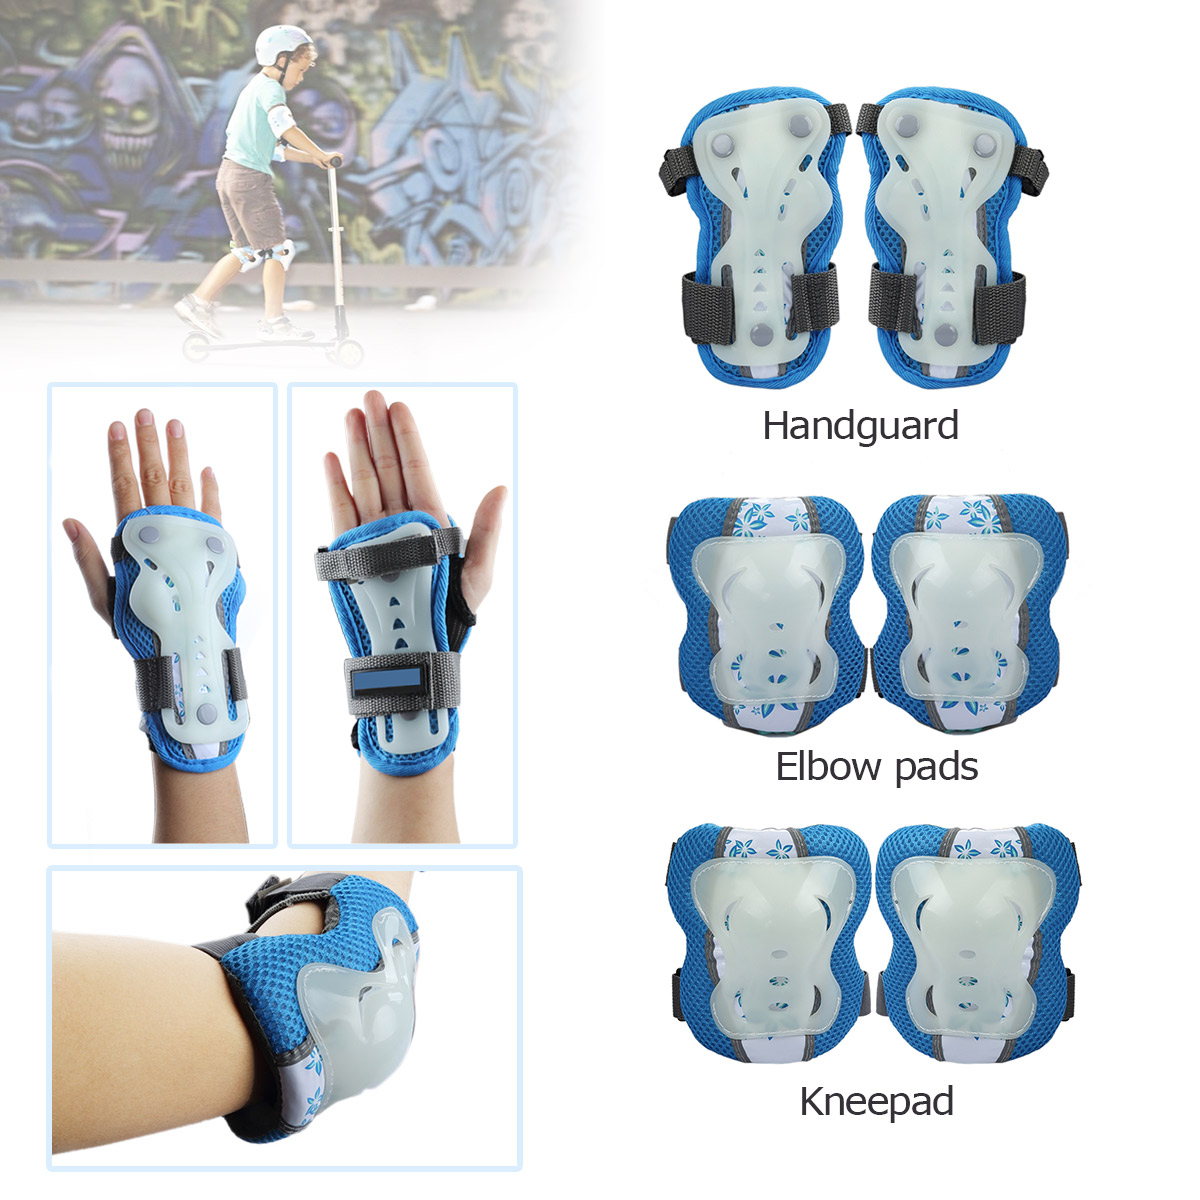 CoastaCloud 6PCS Skateboard Safety Pads Wrist Elbow Knee Outdoors Sports for Kid's Children Boys Girls Protective Gear... by CoastaCloud